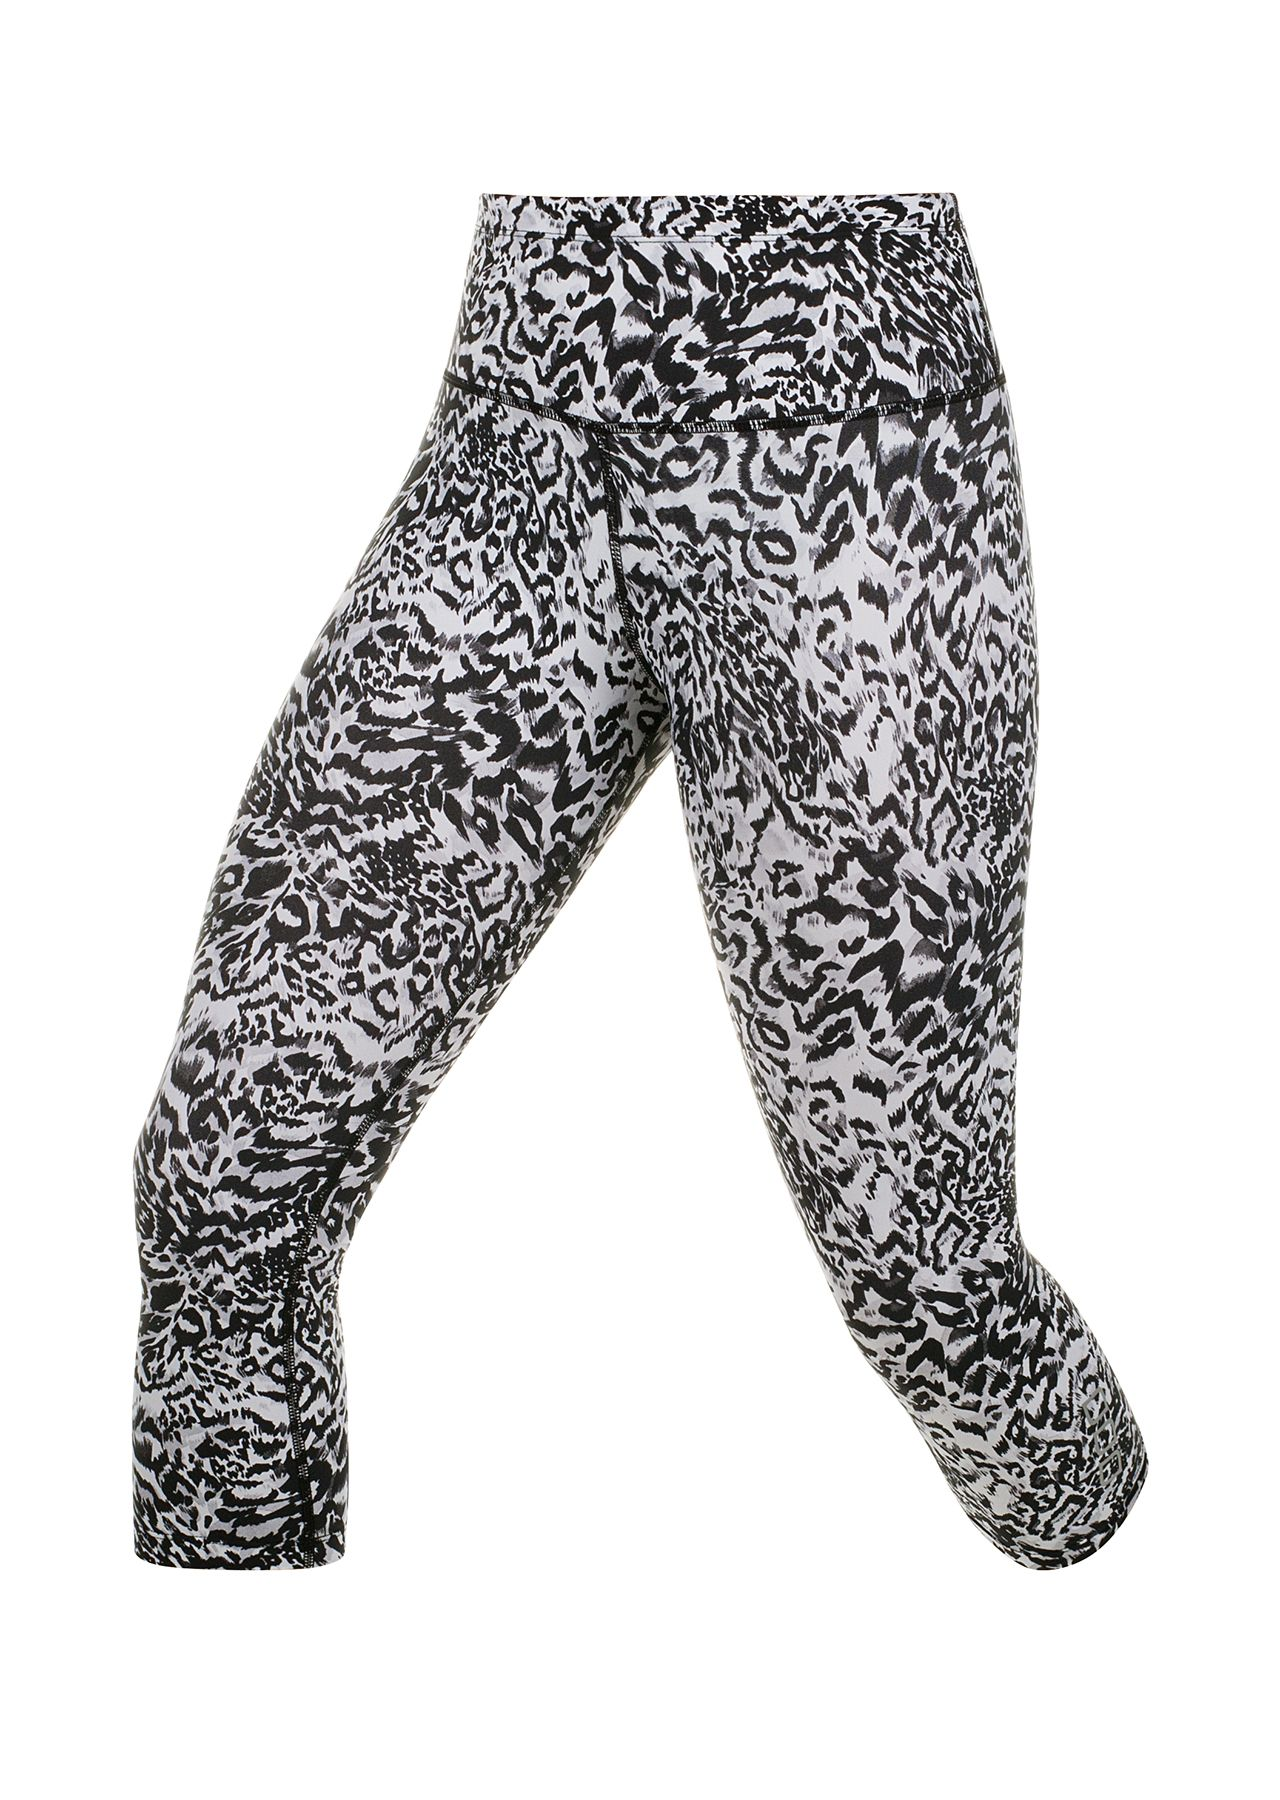 Lorna Jane Jaguar Core 78 Tight MultiColoured